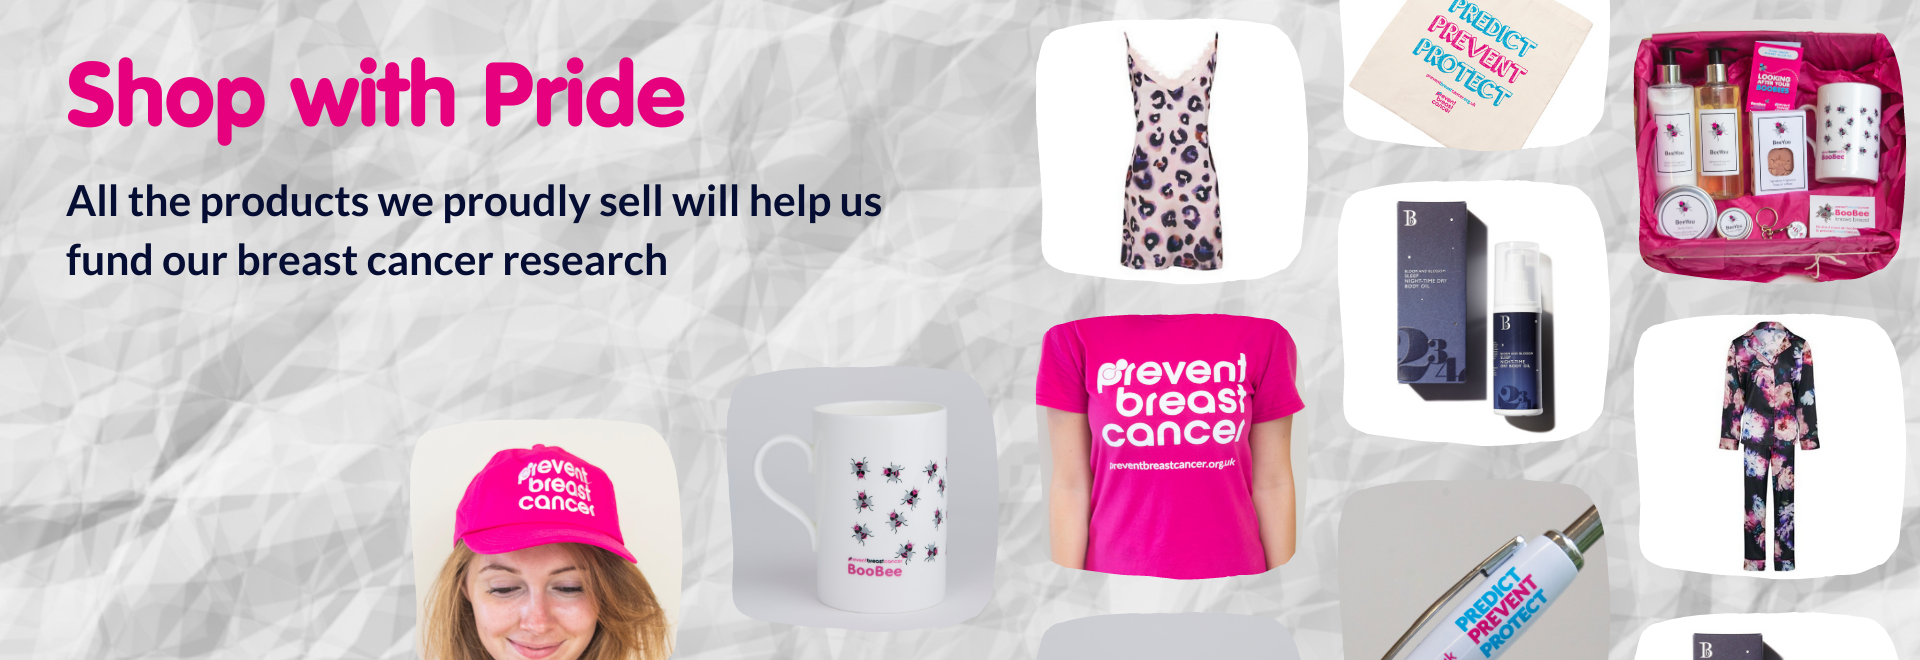 Prevent Breast Cancer Shop